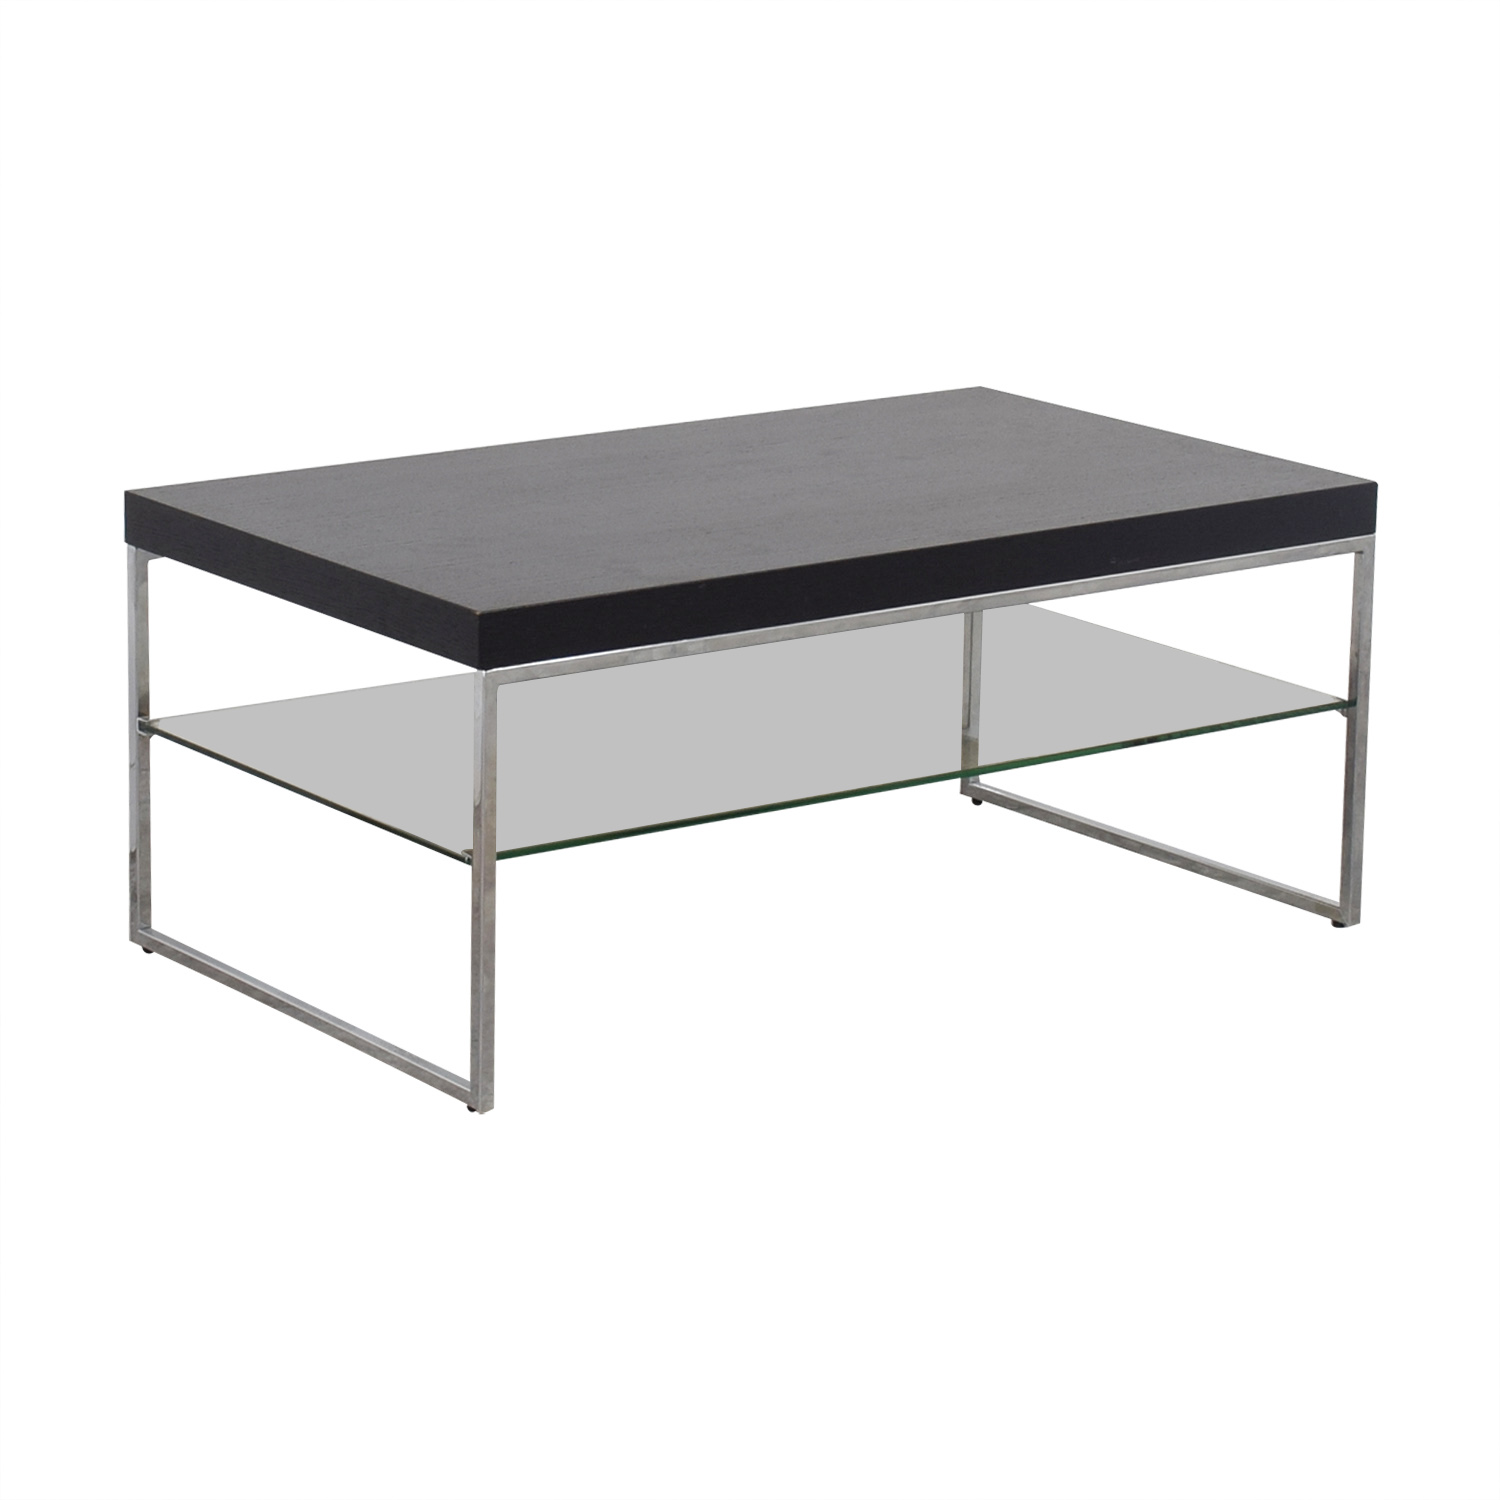 67 off boconcept boconcept coffee table tables. Black Bedroom Furniture Sets. Home Design Ideas